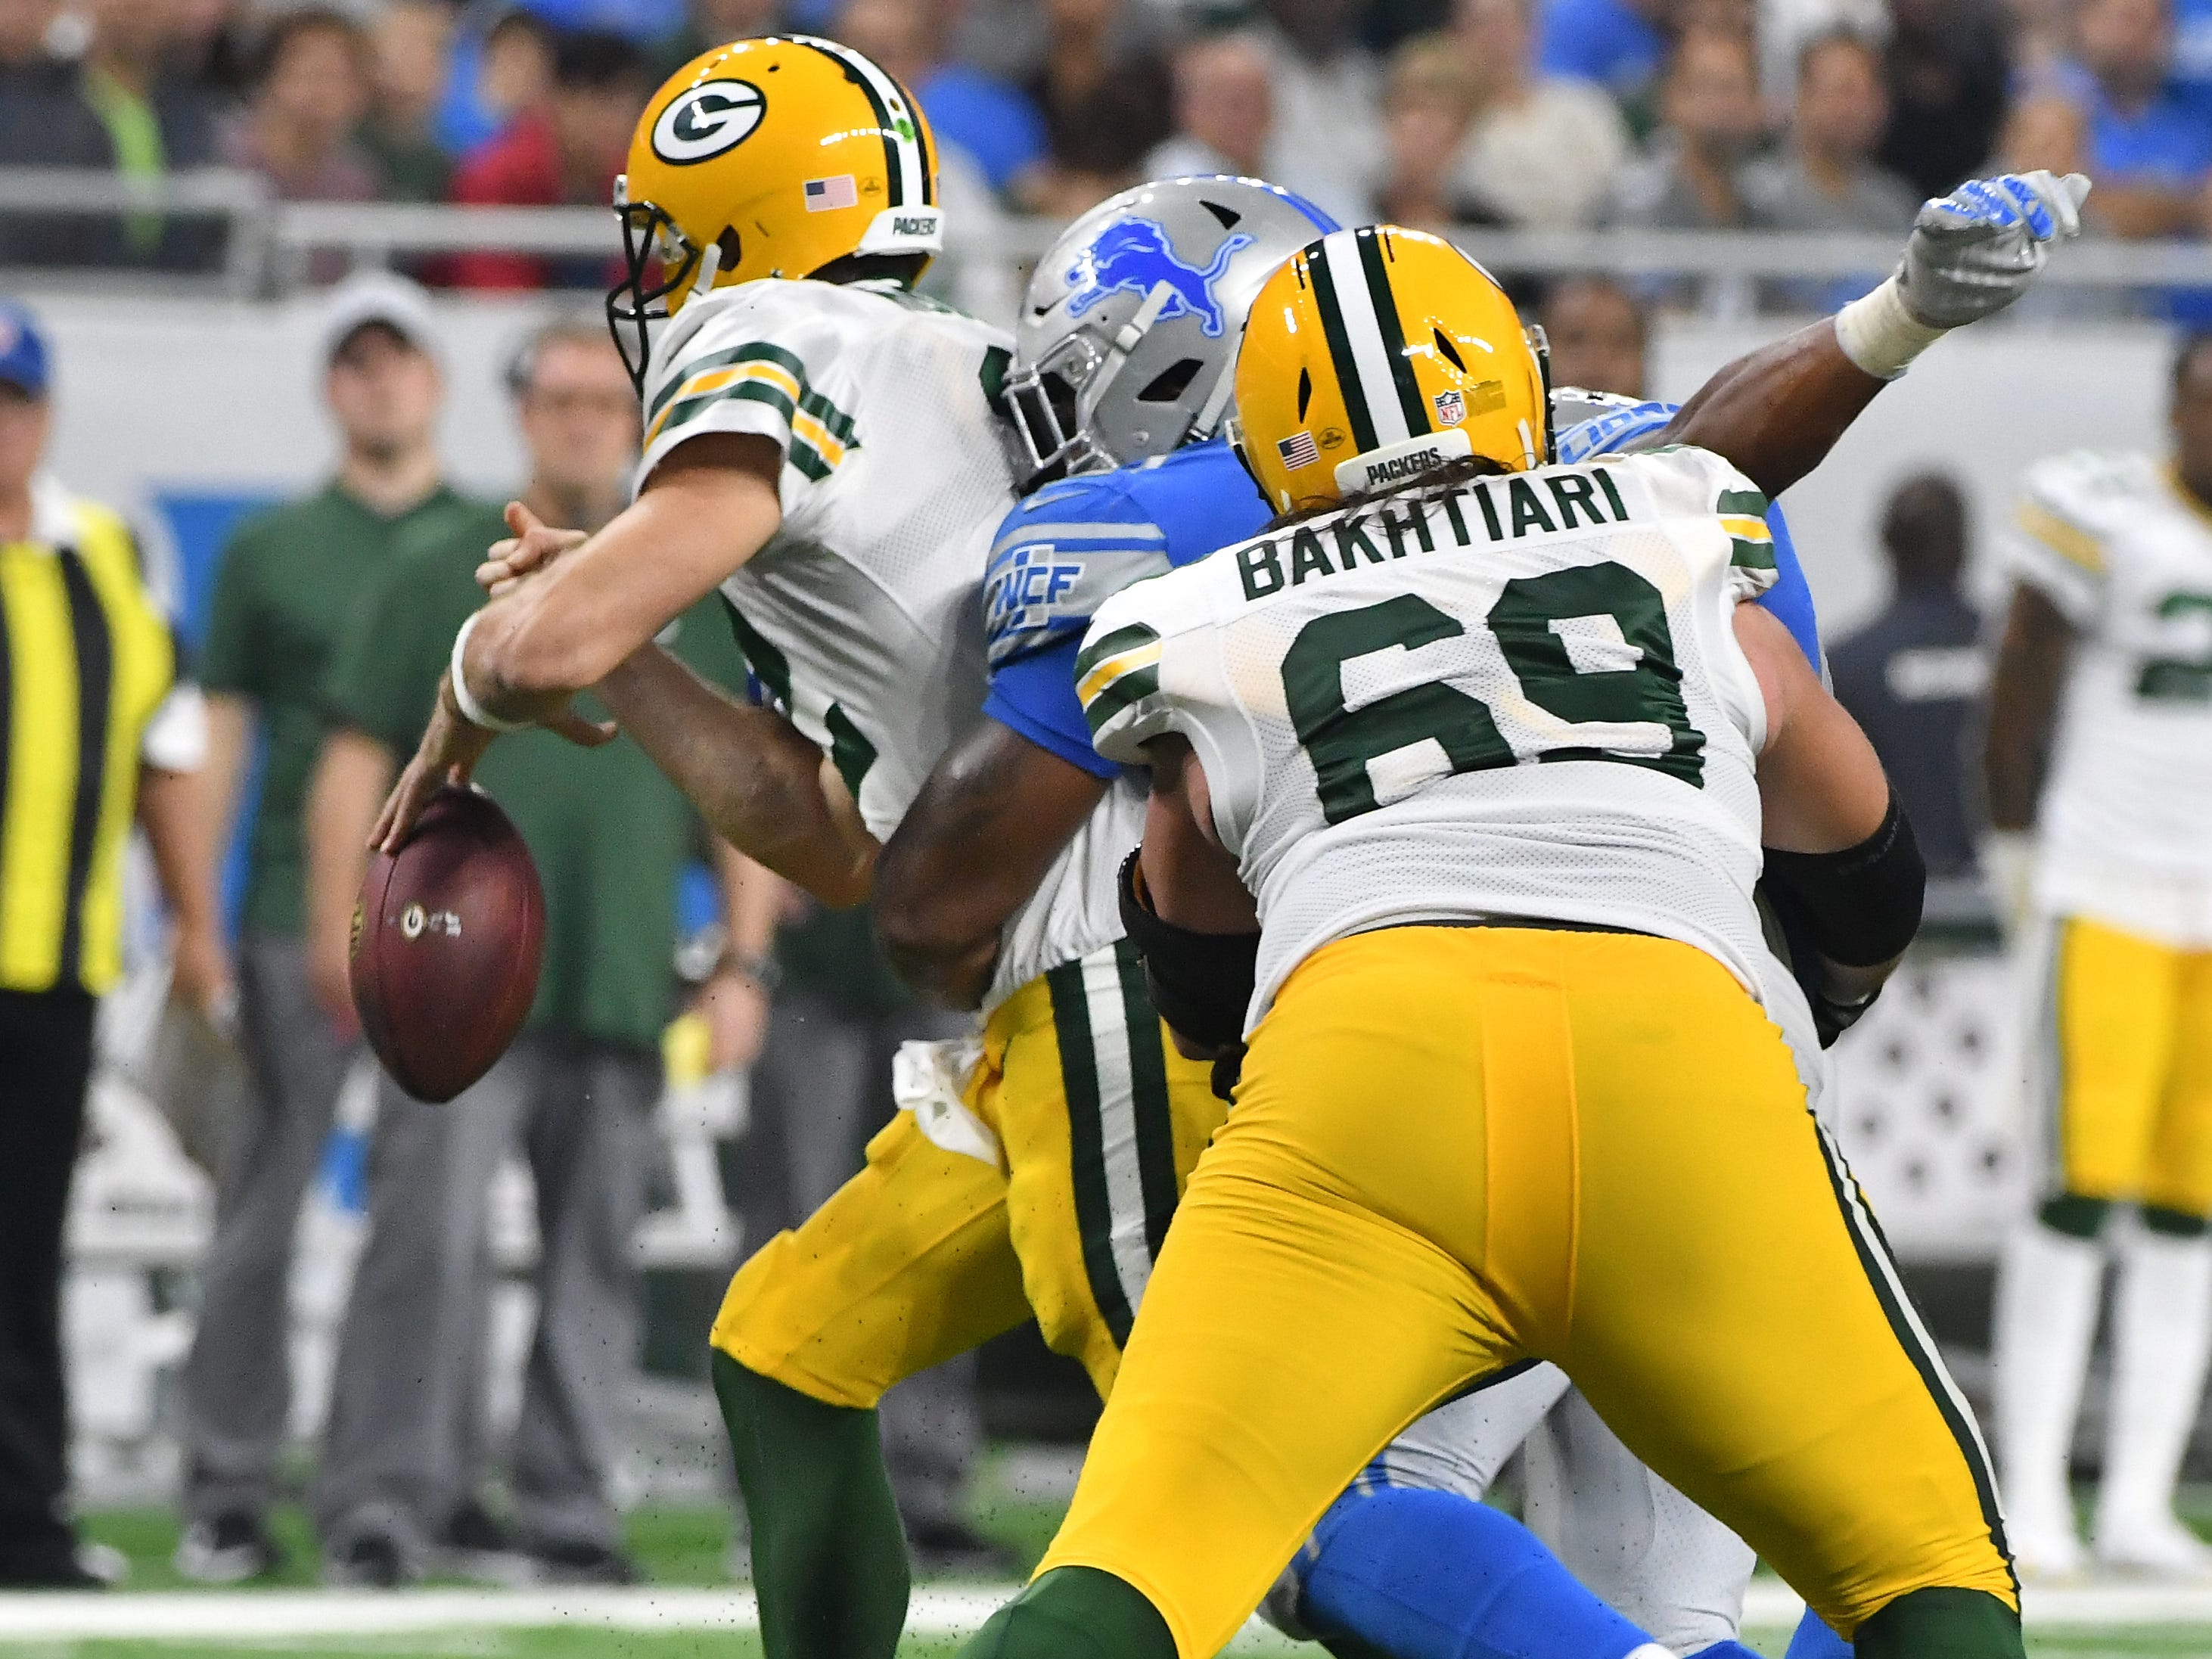 Lions' Da'Shawn Hand knocks the ball out of Packers quarterback Aaron Rodgers hands and then recovers it late in the second quarter.